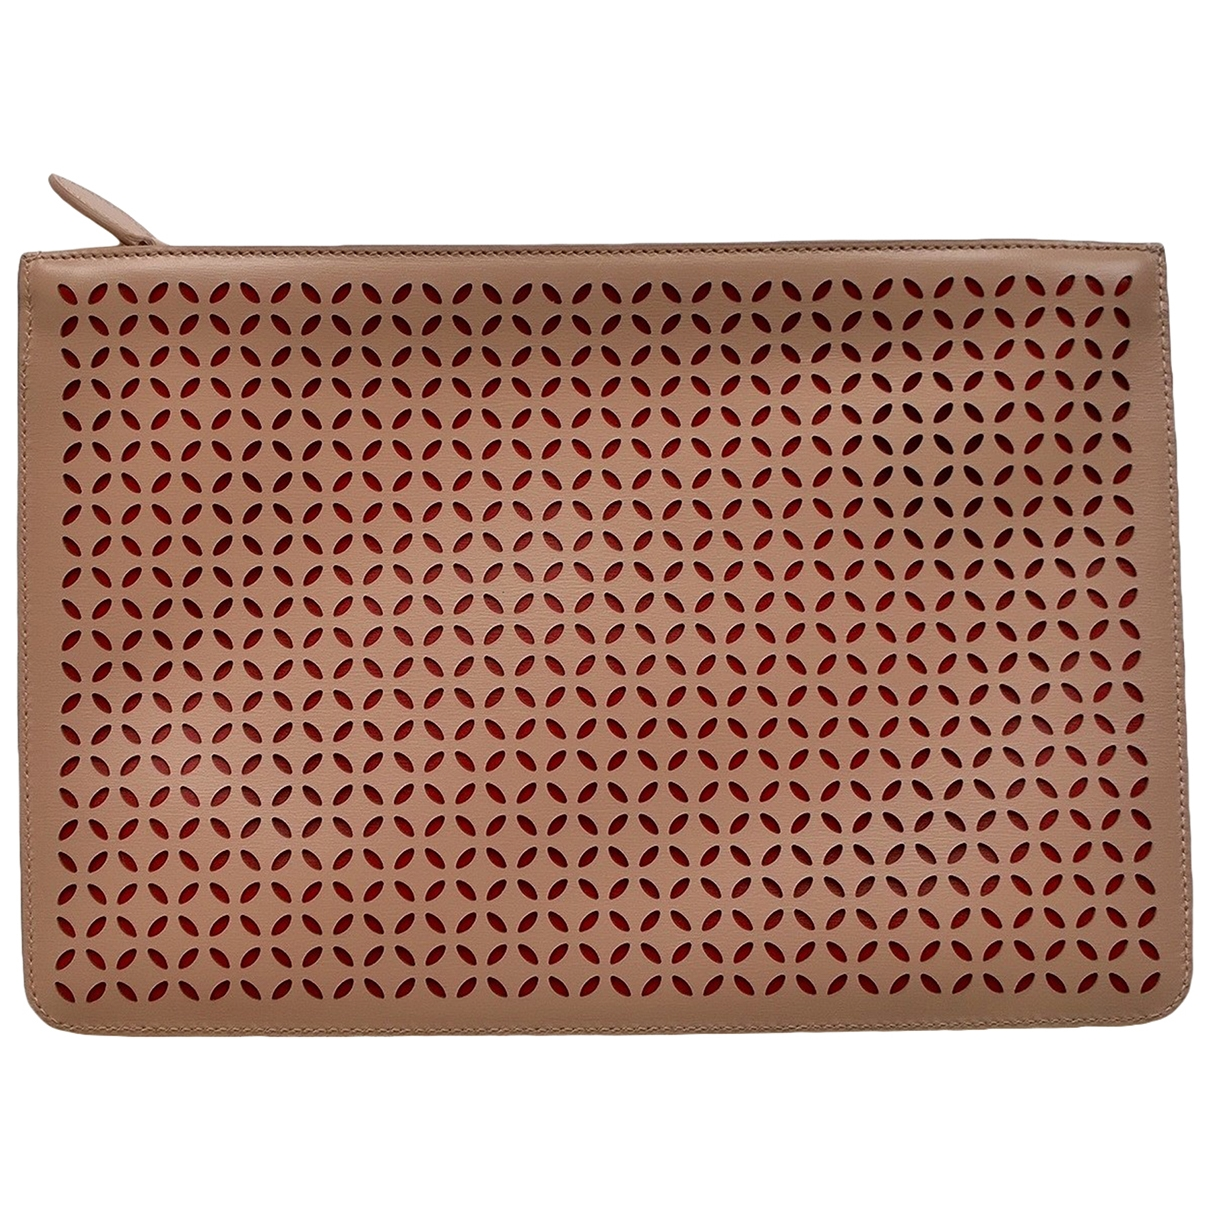 Alaïa \N Leather Clutch bag for Women \N